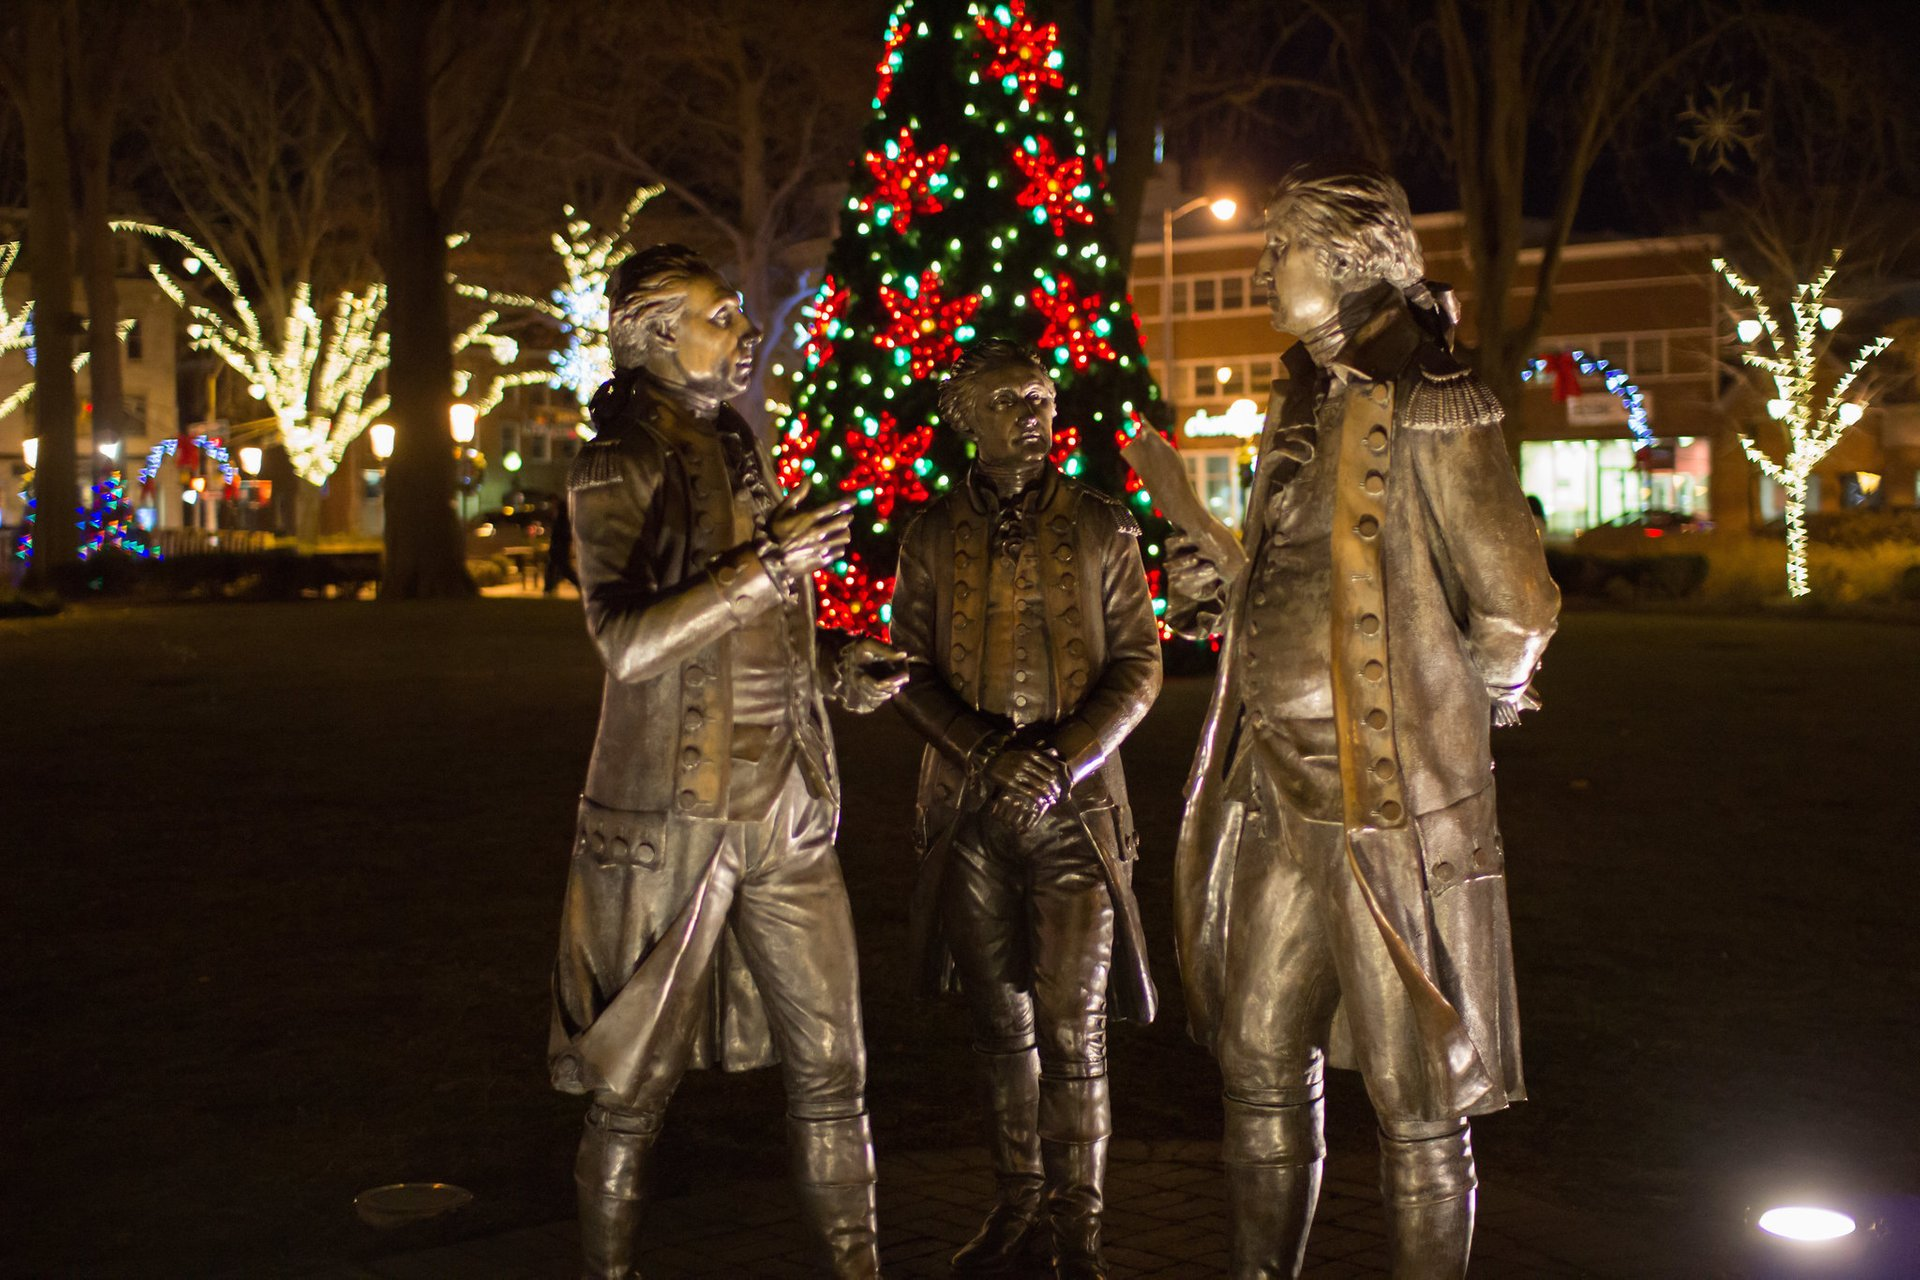 Morristown Green Christmas Lights and statues on the Green 2020